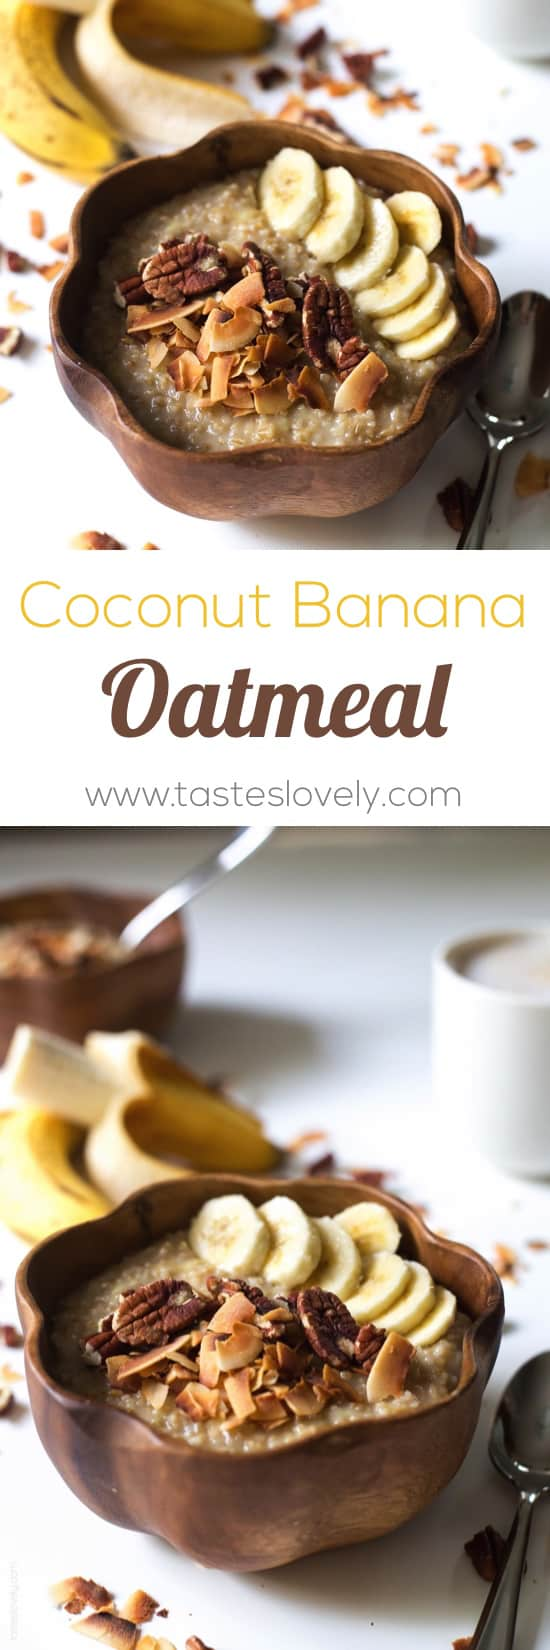 Coconut Banana Steel Cut Oatmeal - a healthy and flavorful vegan and gluten free breakfast